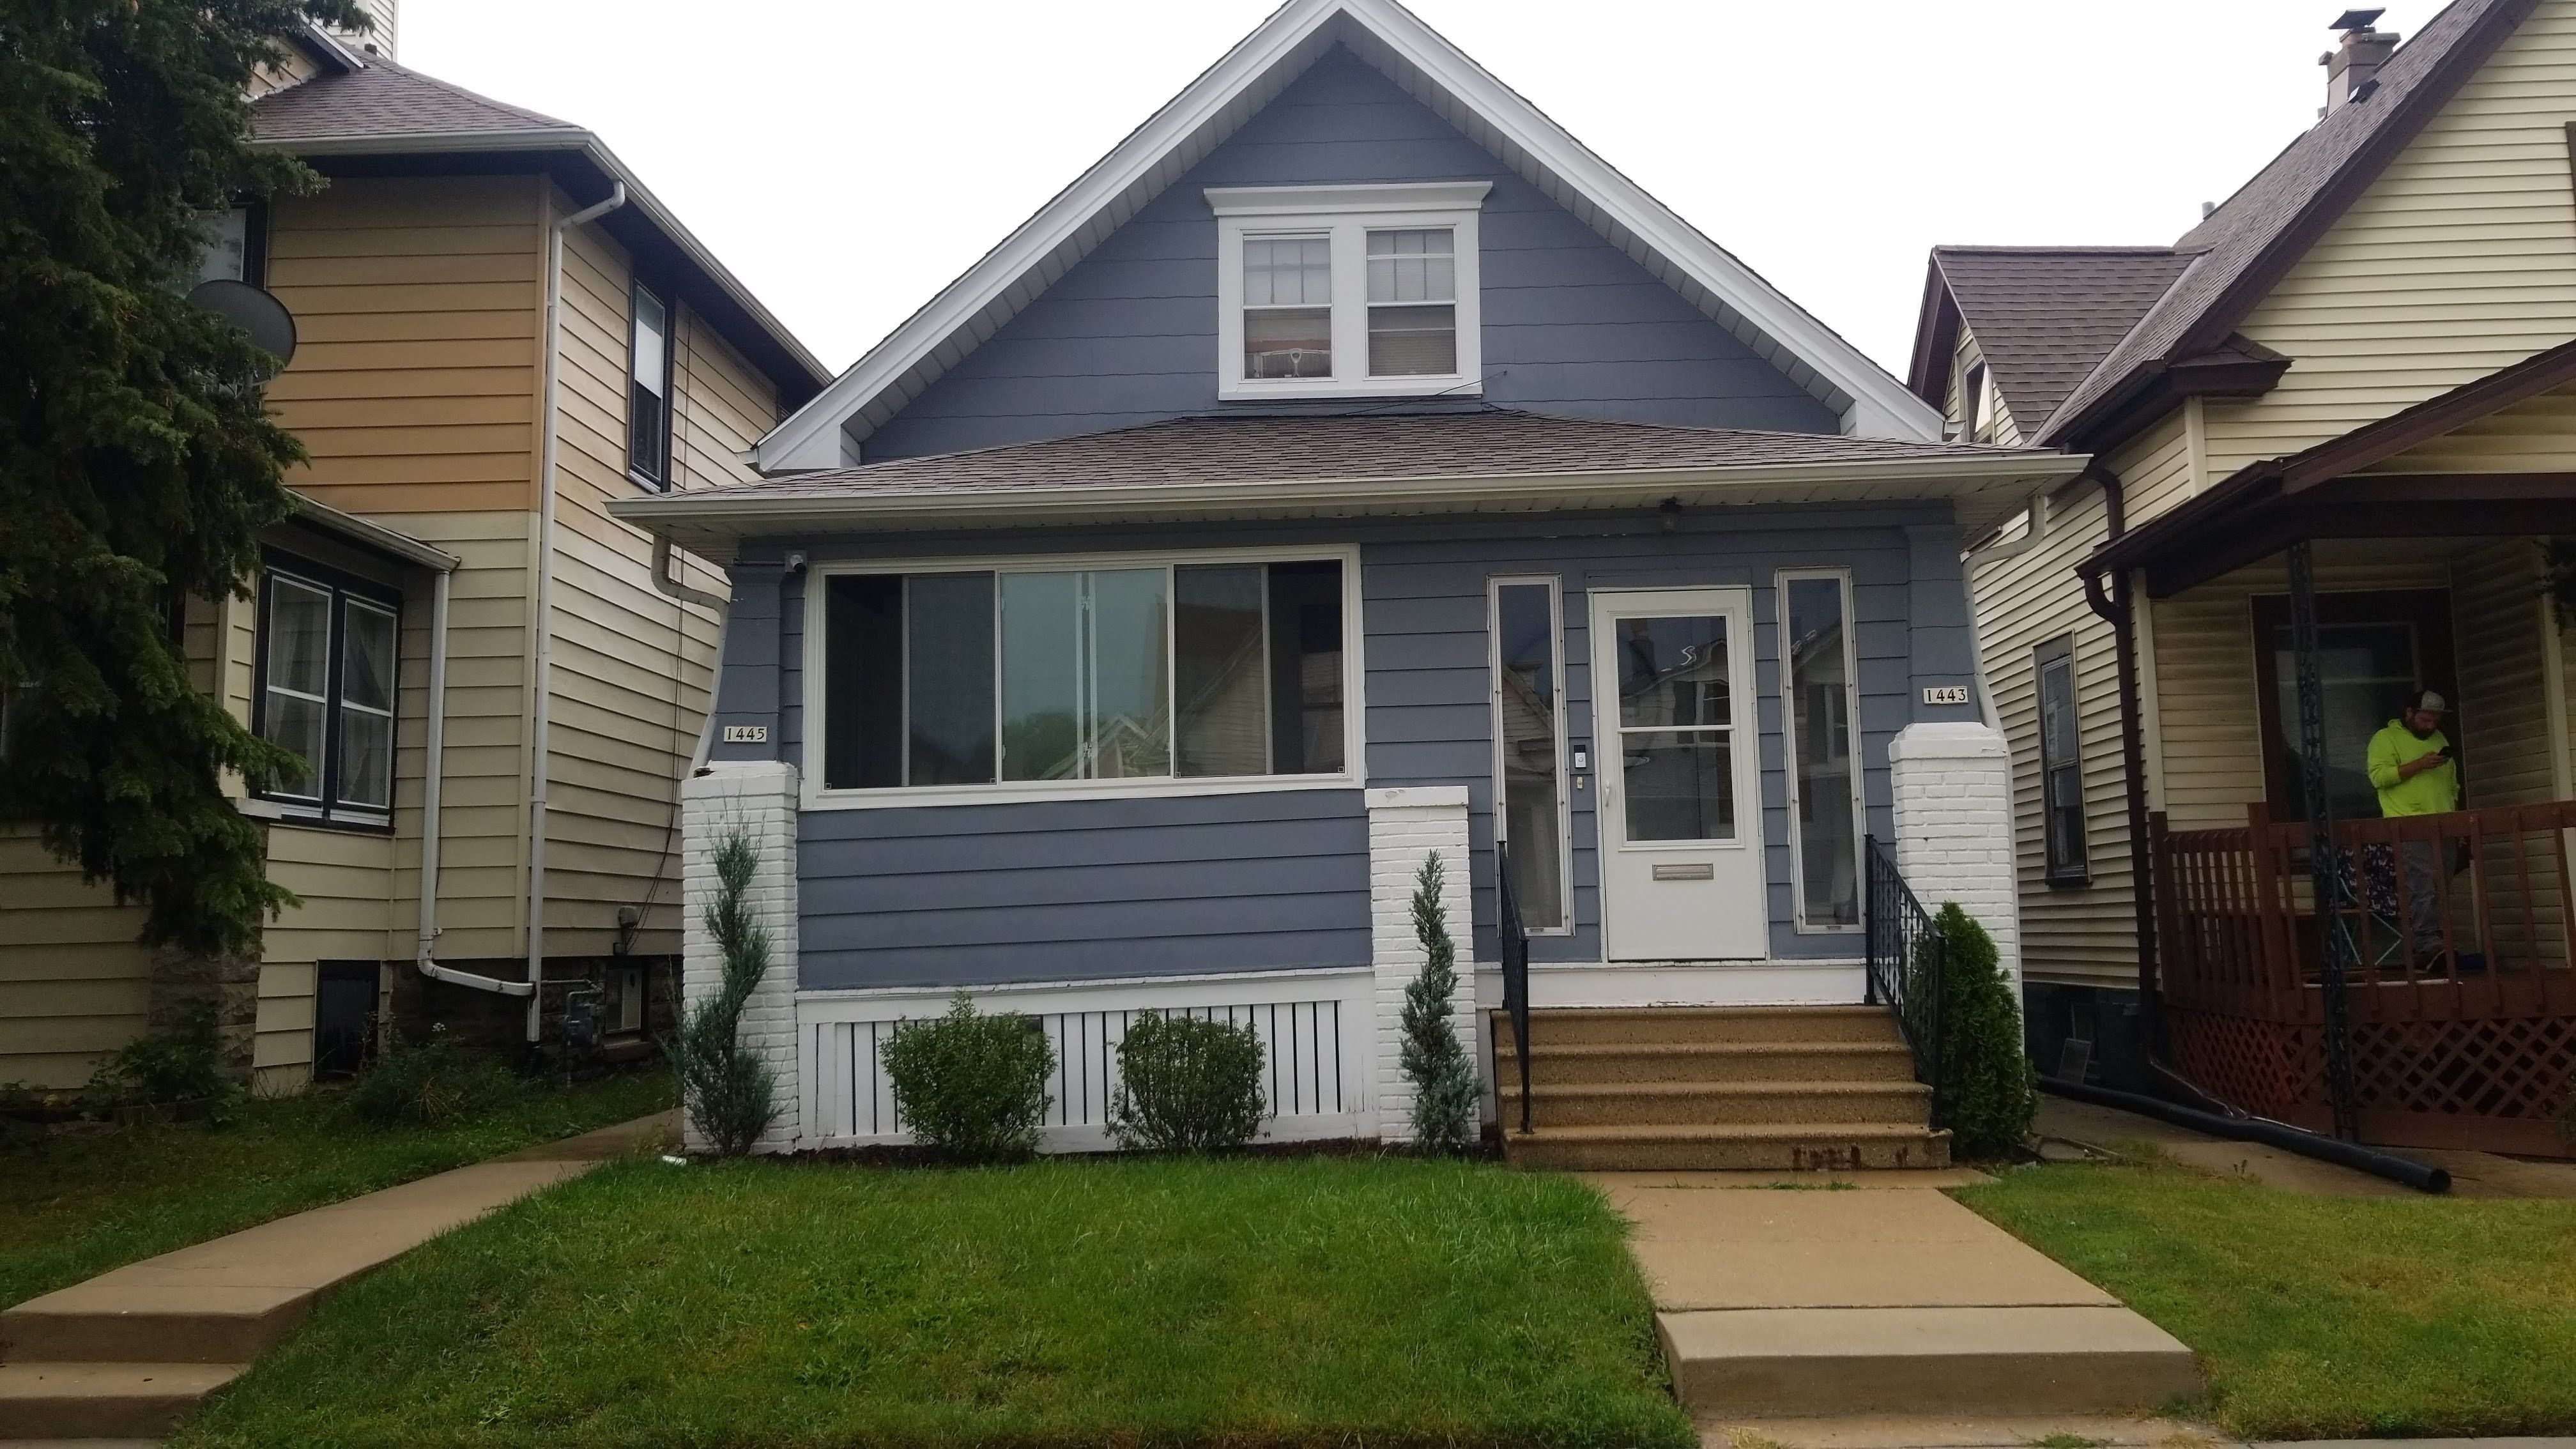 1443 S 73rd St (Image - 1)